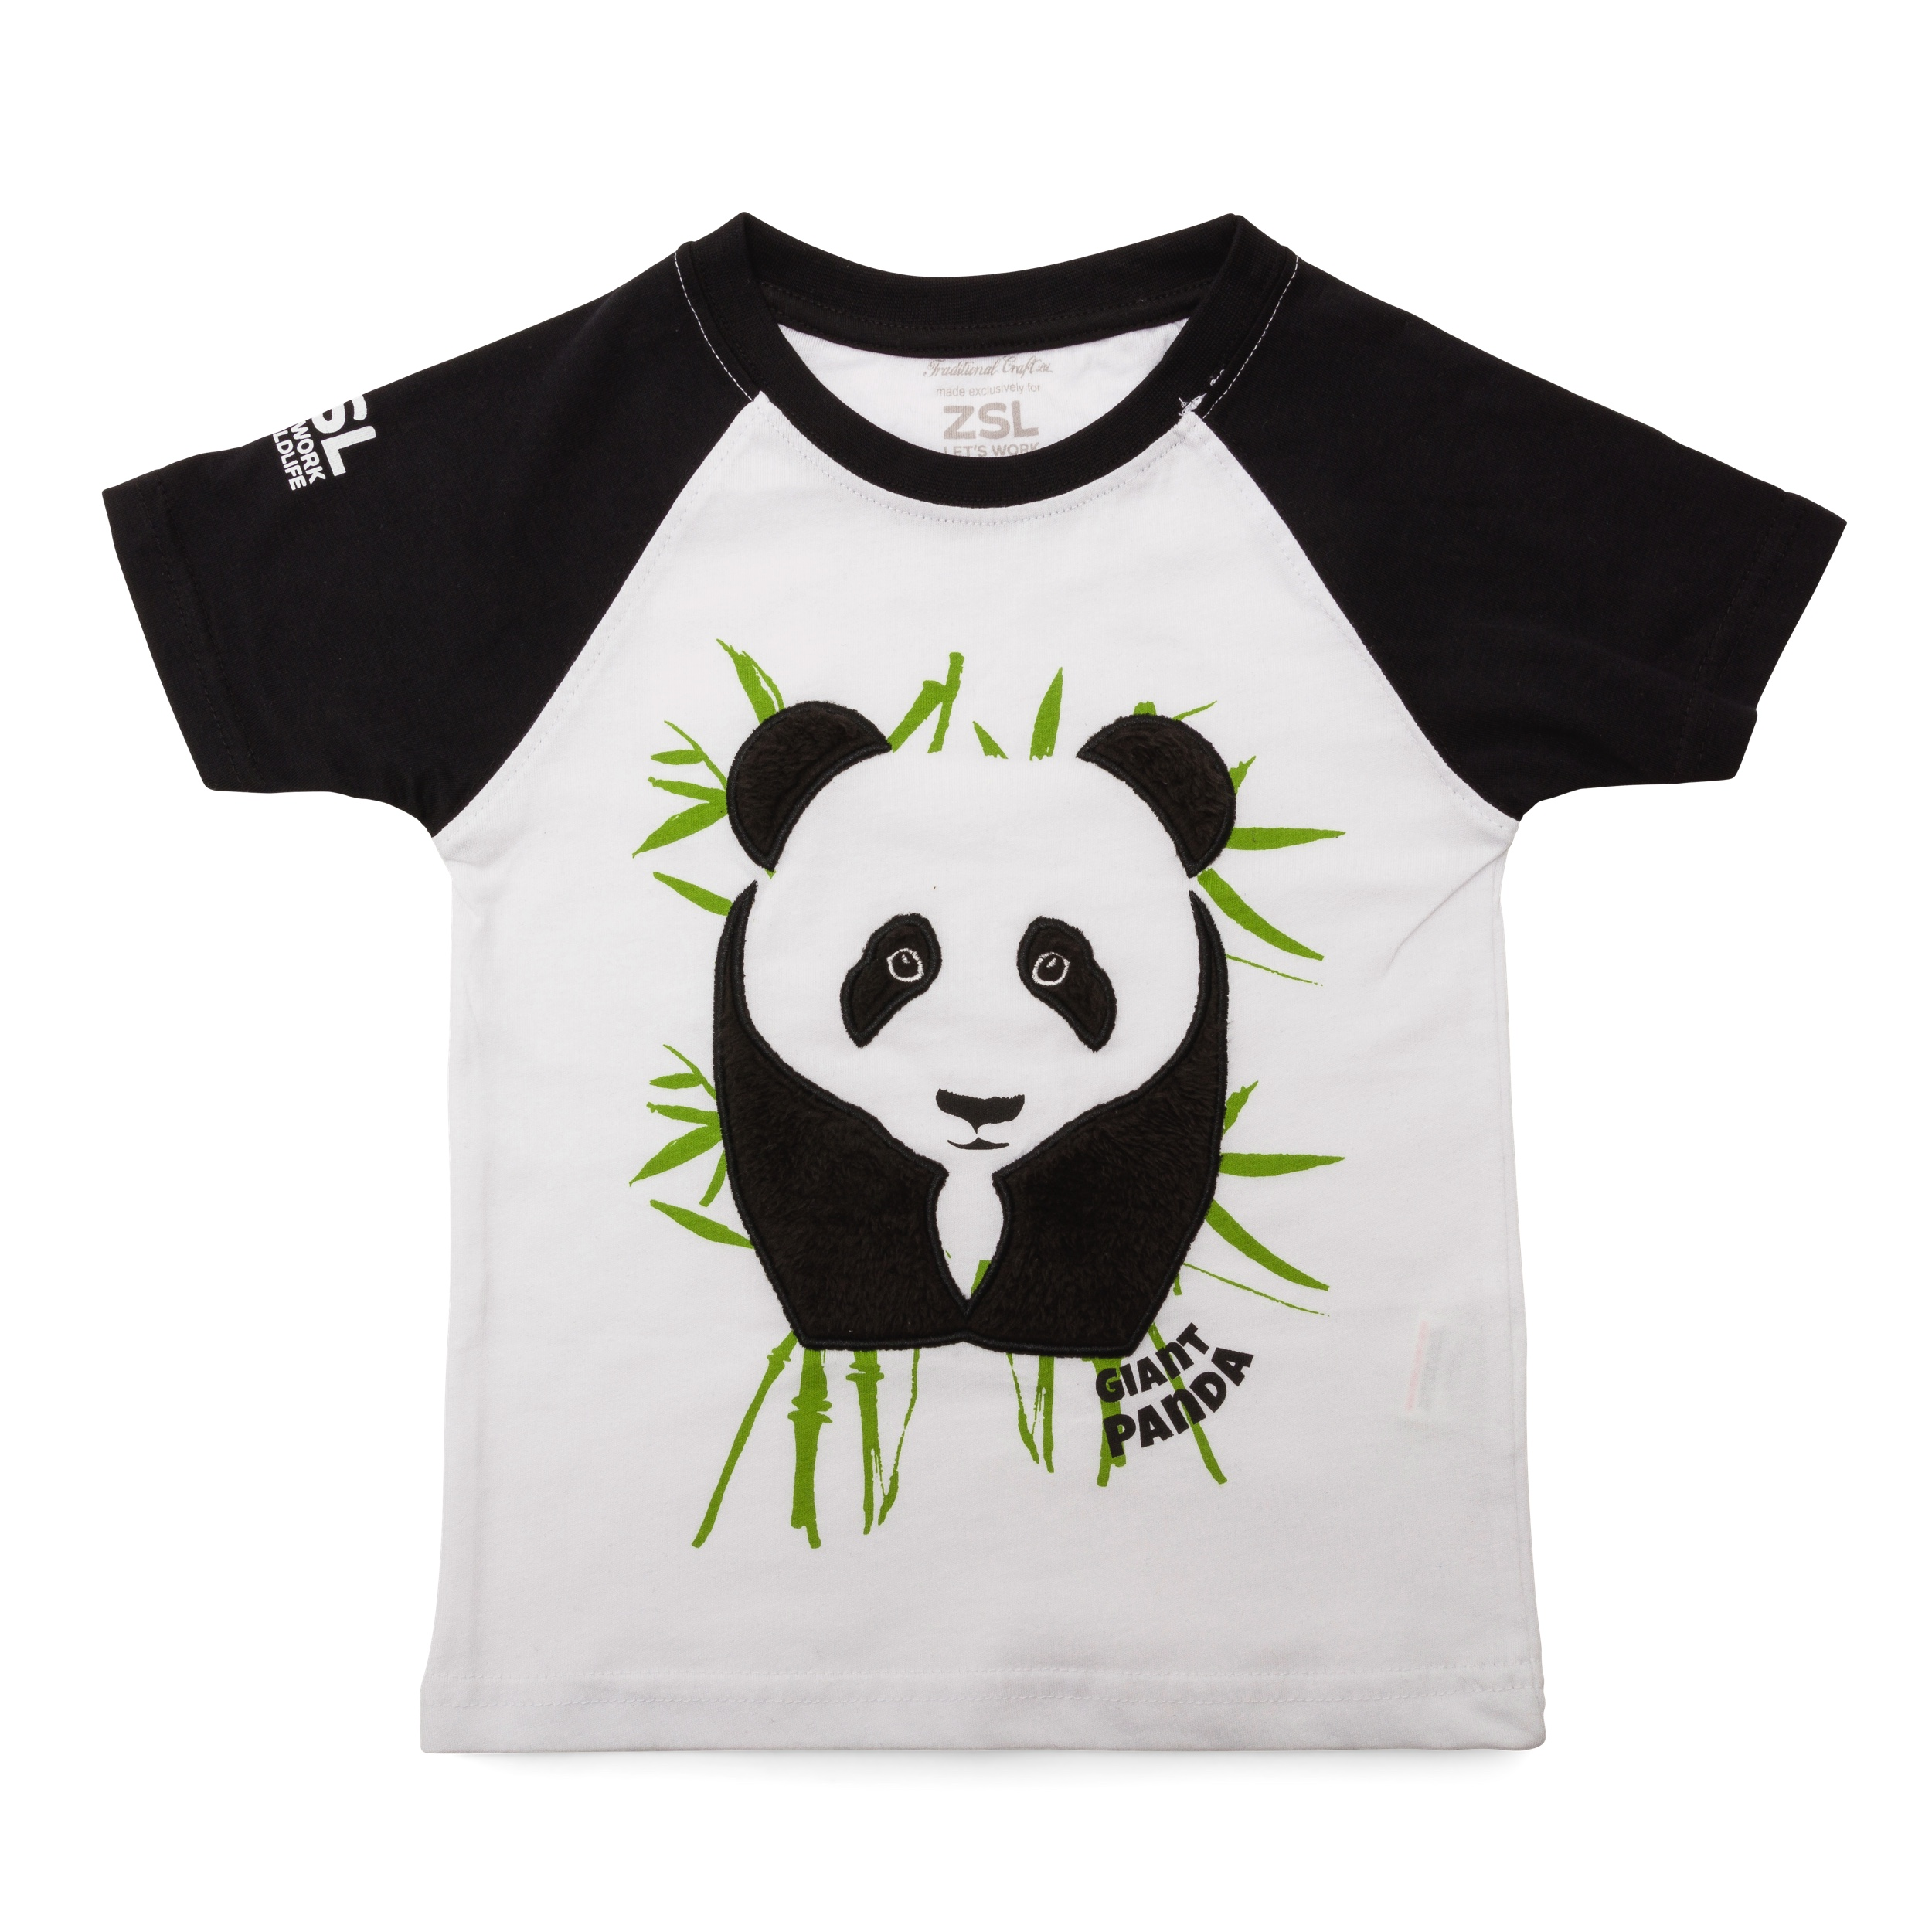 Children's panda t-shirt